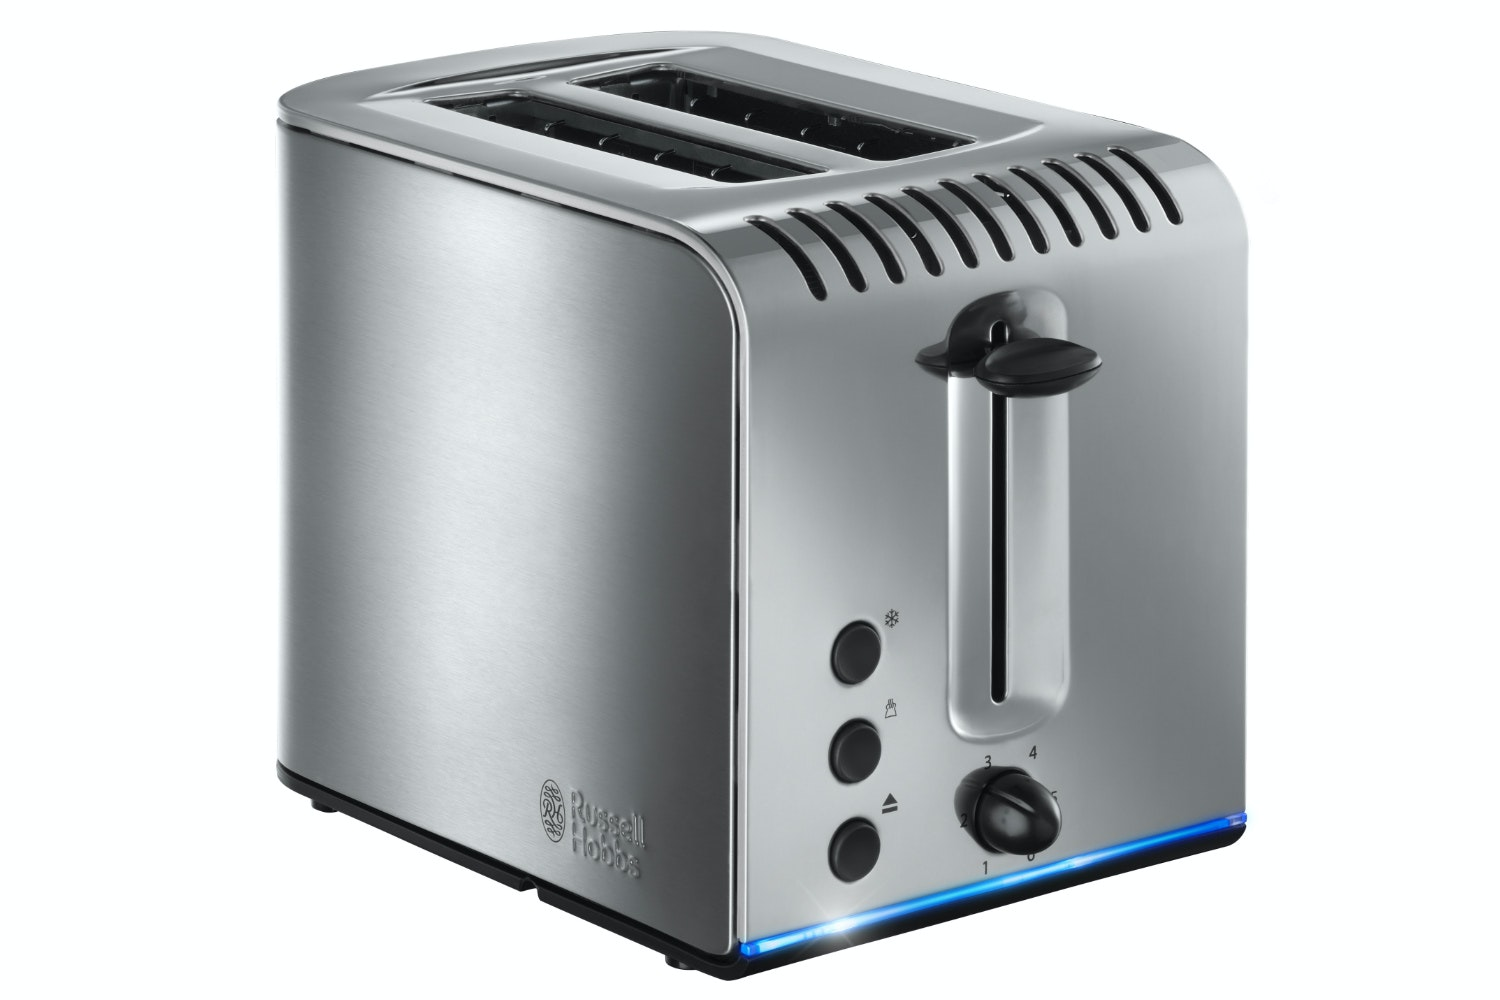 Russell Hobbs Buckingham 2 Slice Toaster | 20740 | Stainless Steel